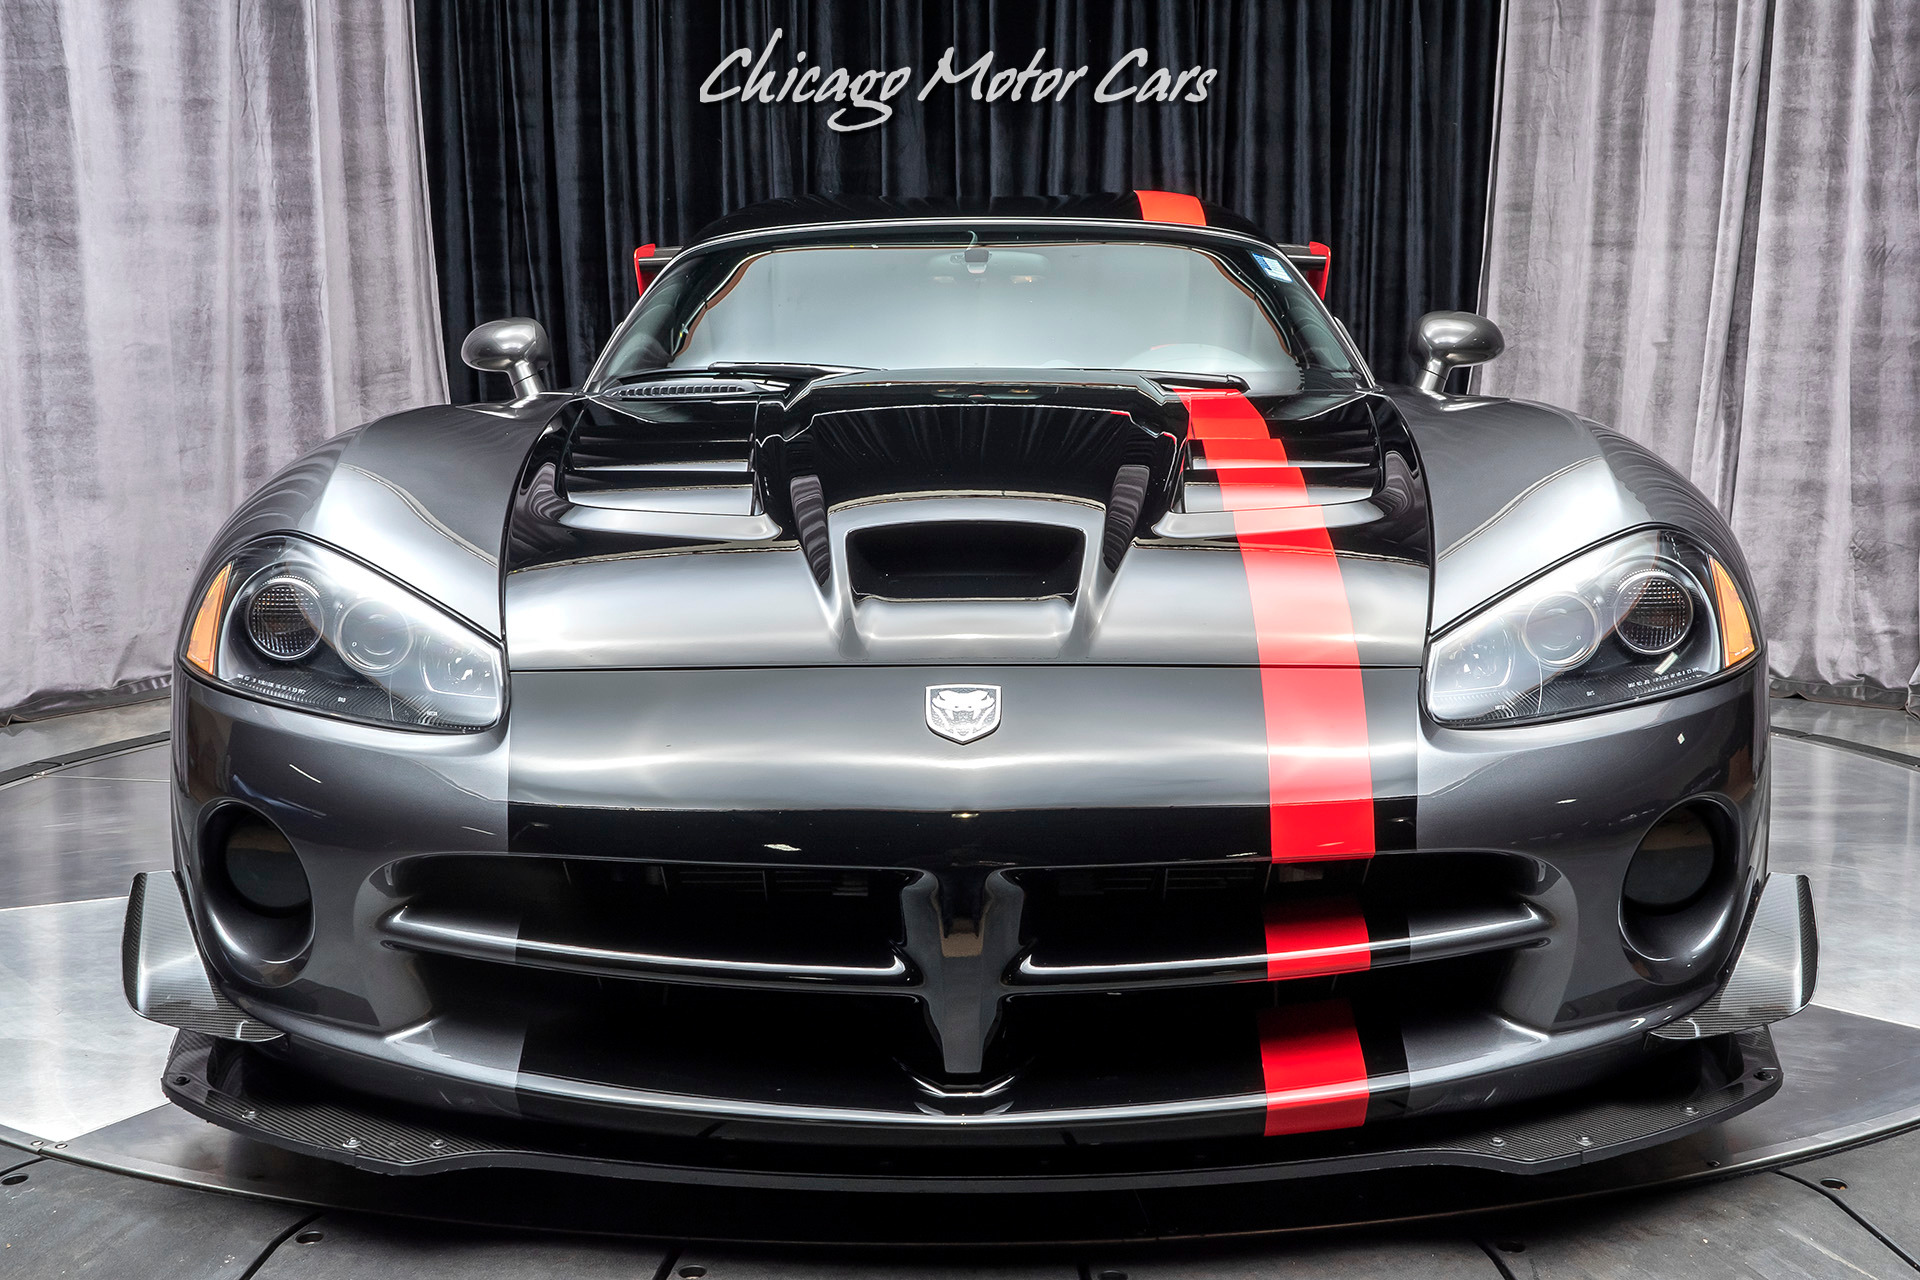 Used-2009-Dodge-Viper-ACR-Coupe-9k-Miles-Collector-Quality-Stripes